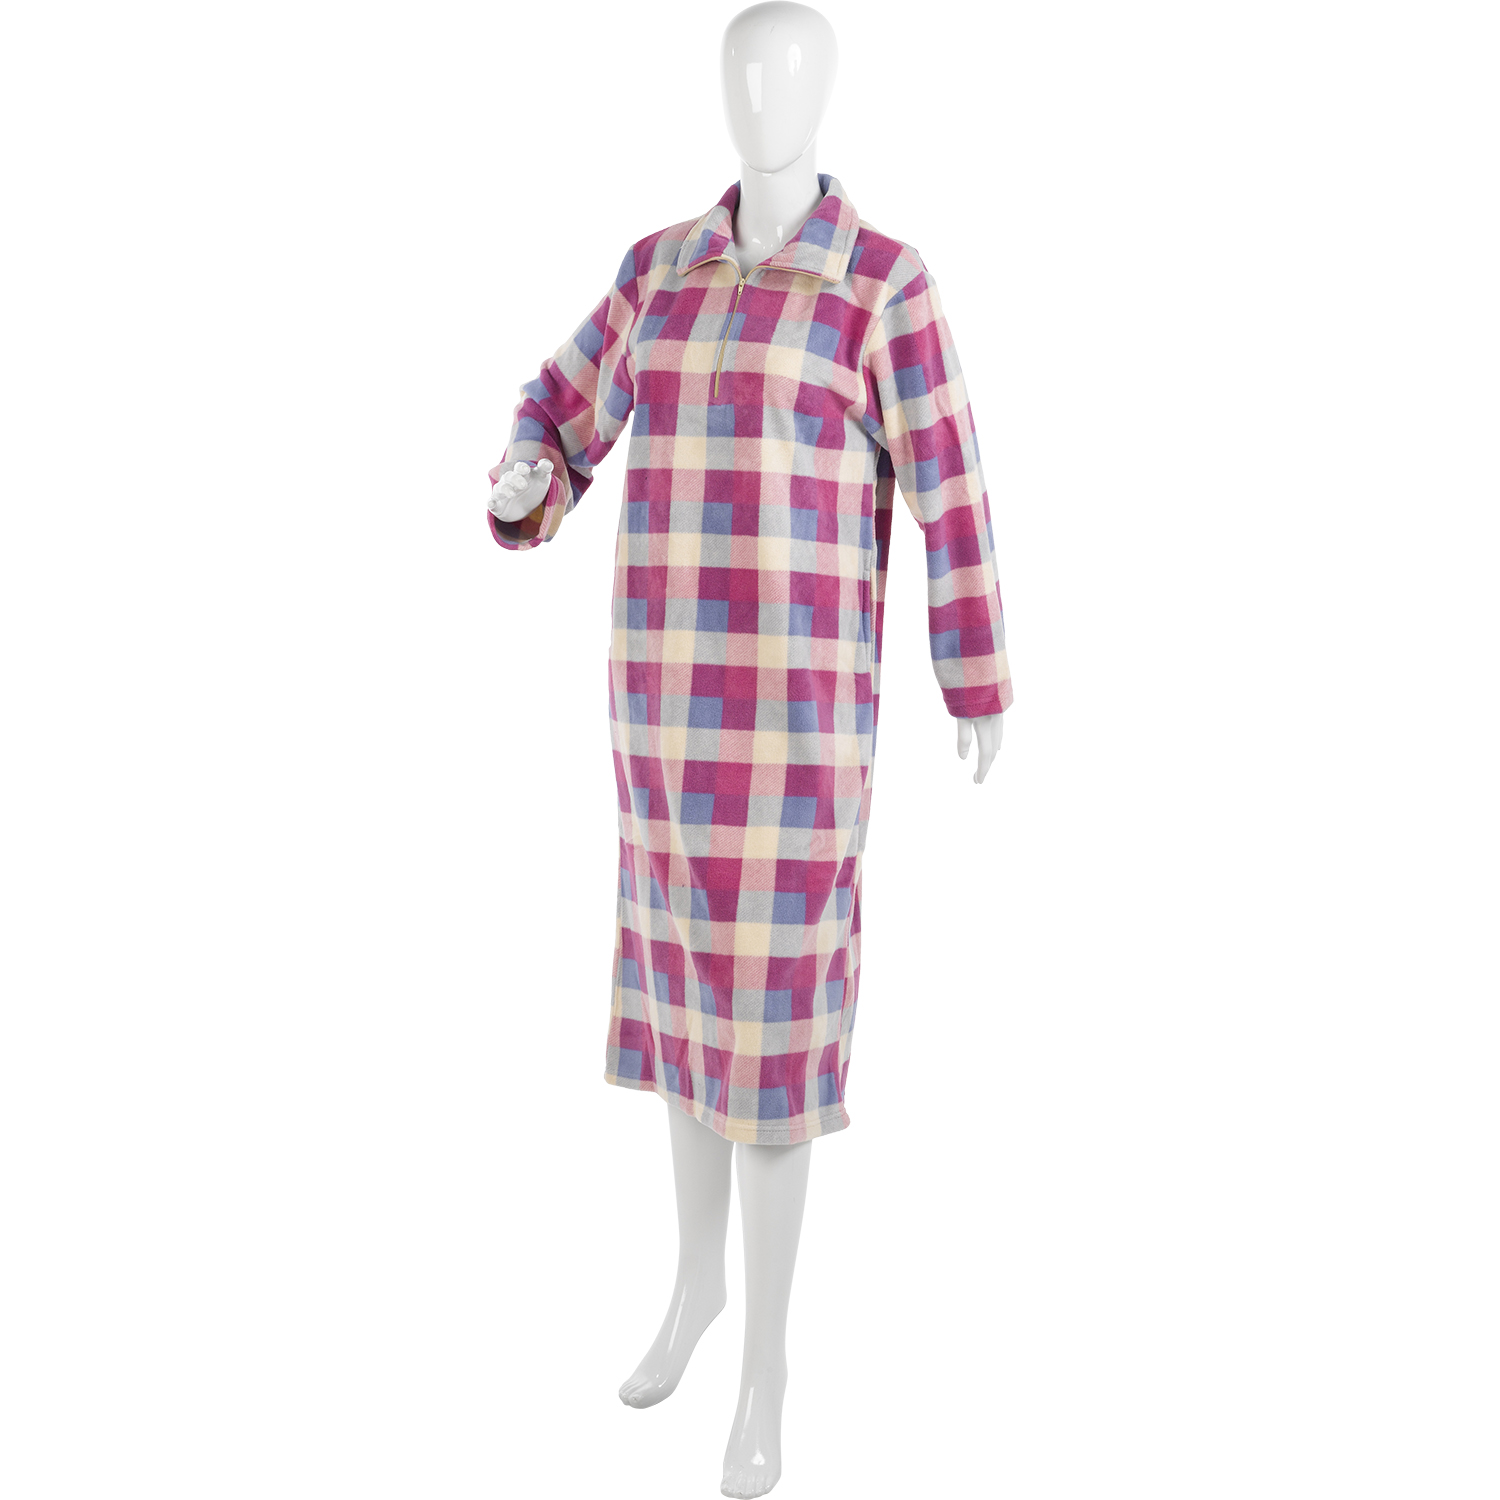 Long Sleeve soft fleece nightdress with really pretty embroidery. 3 button opening, comfortable fit. Ladies Long Sleeve Soft FleeceNightie. Sizes , , ,